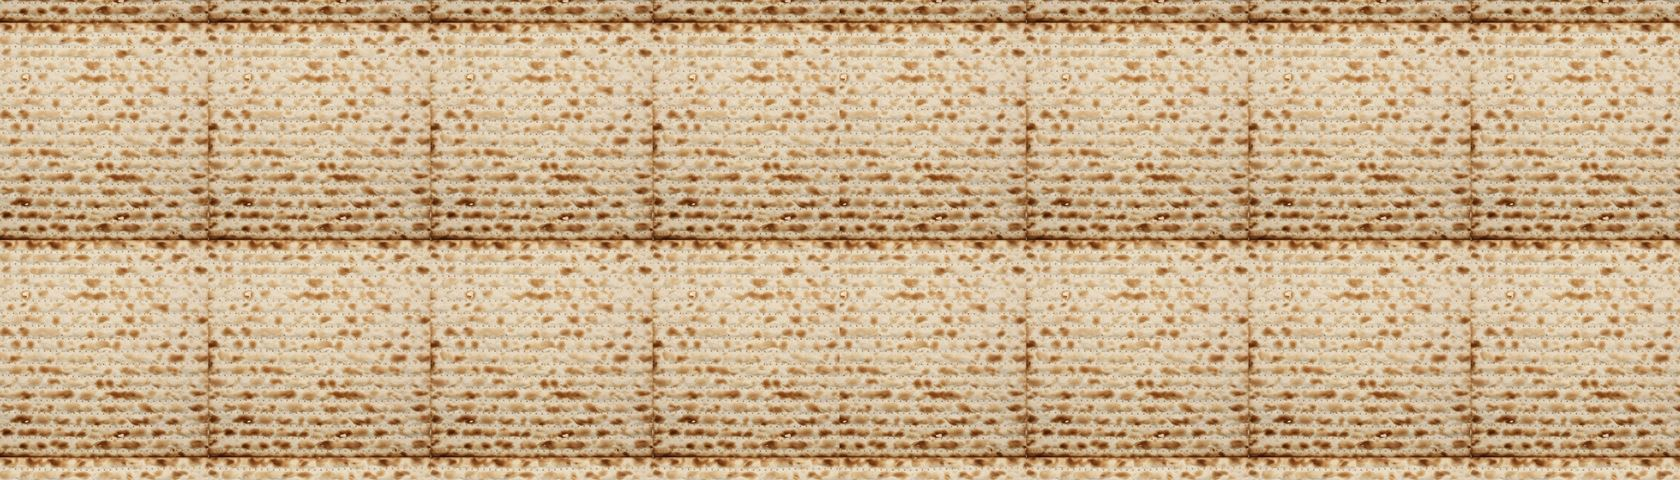 Matzah Images WallpaperFusion by Binary Fortress Software 1680x480